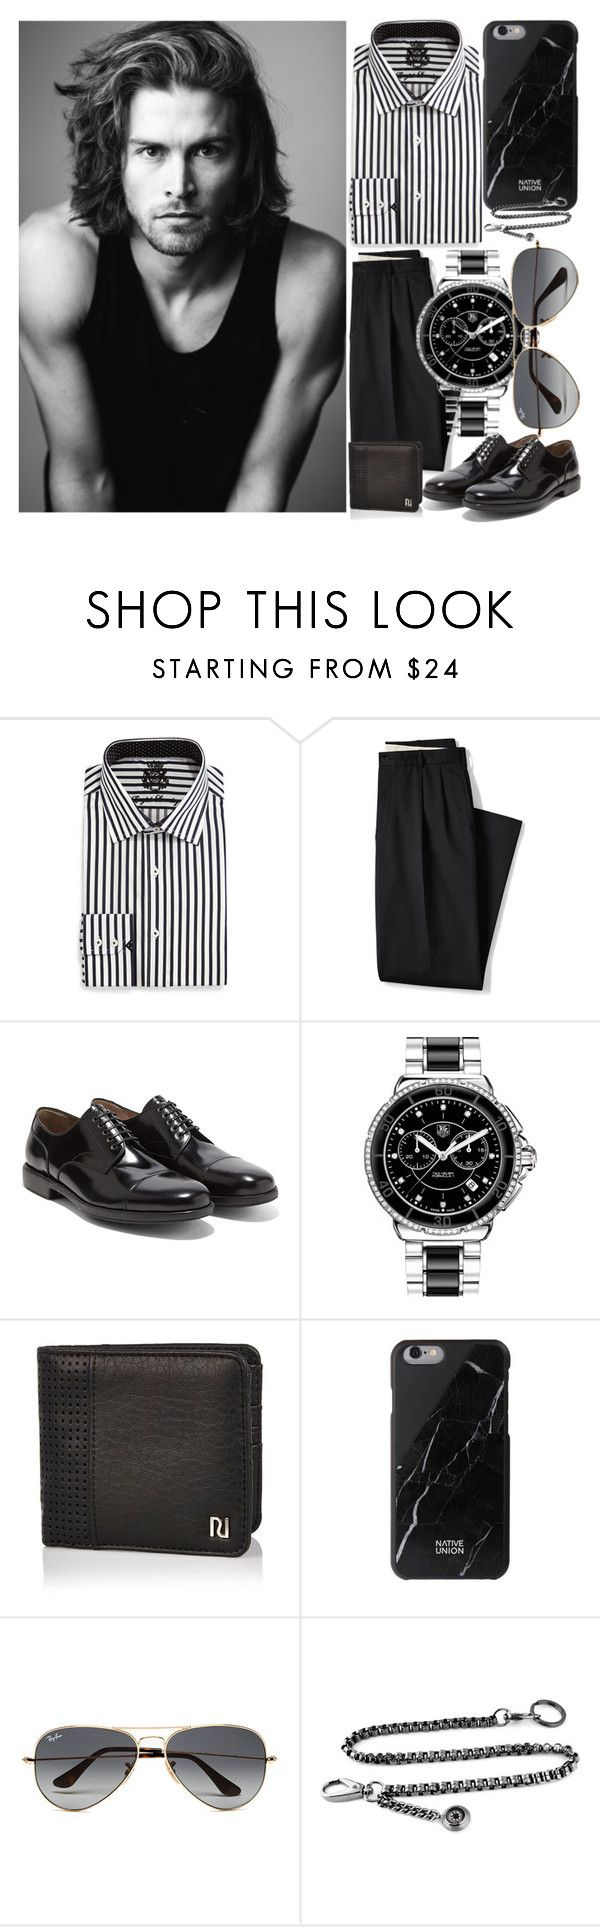 """Monday Work Outfit for Men: 04/04/16"" by pinky-chocolatte ❤ liked on Polyvore featuring English Laundry, Merrell, Lands' End, Salvatore Ferragamo, TAG Heuer, River Island, Native Union, Ray-Ban, men's fashion and menswear"